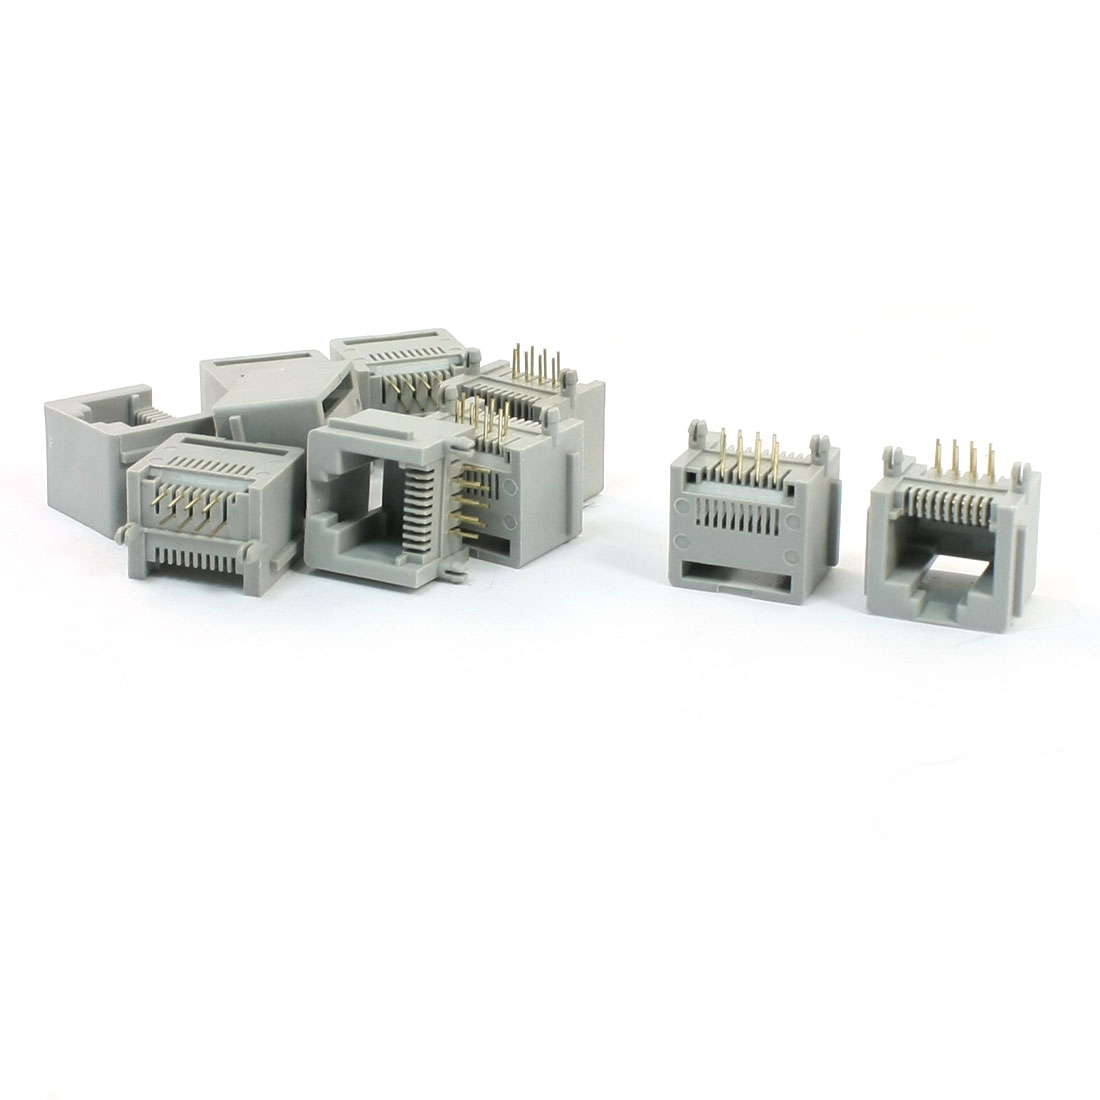 10 Pcs Network RJ45 Modular Jack 8P8C 8 Pins PCB PC Board Connector Gray